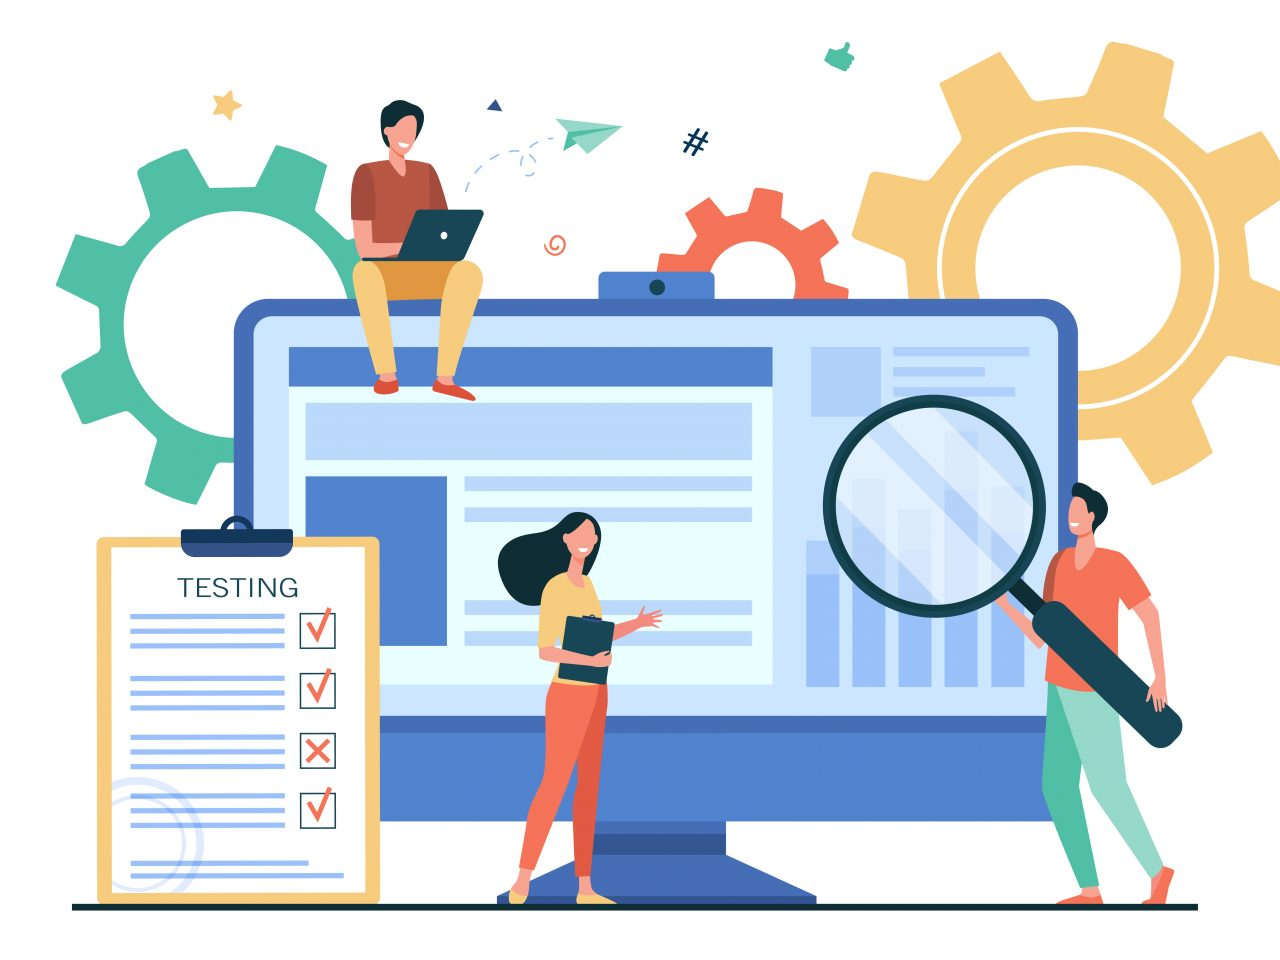 Tiny people testing quality assurance in software isolated flat vector illustration. Cartoon character fixing bugs in hardware device. Application test and IT service concept